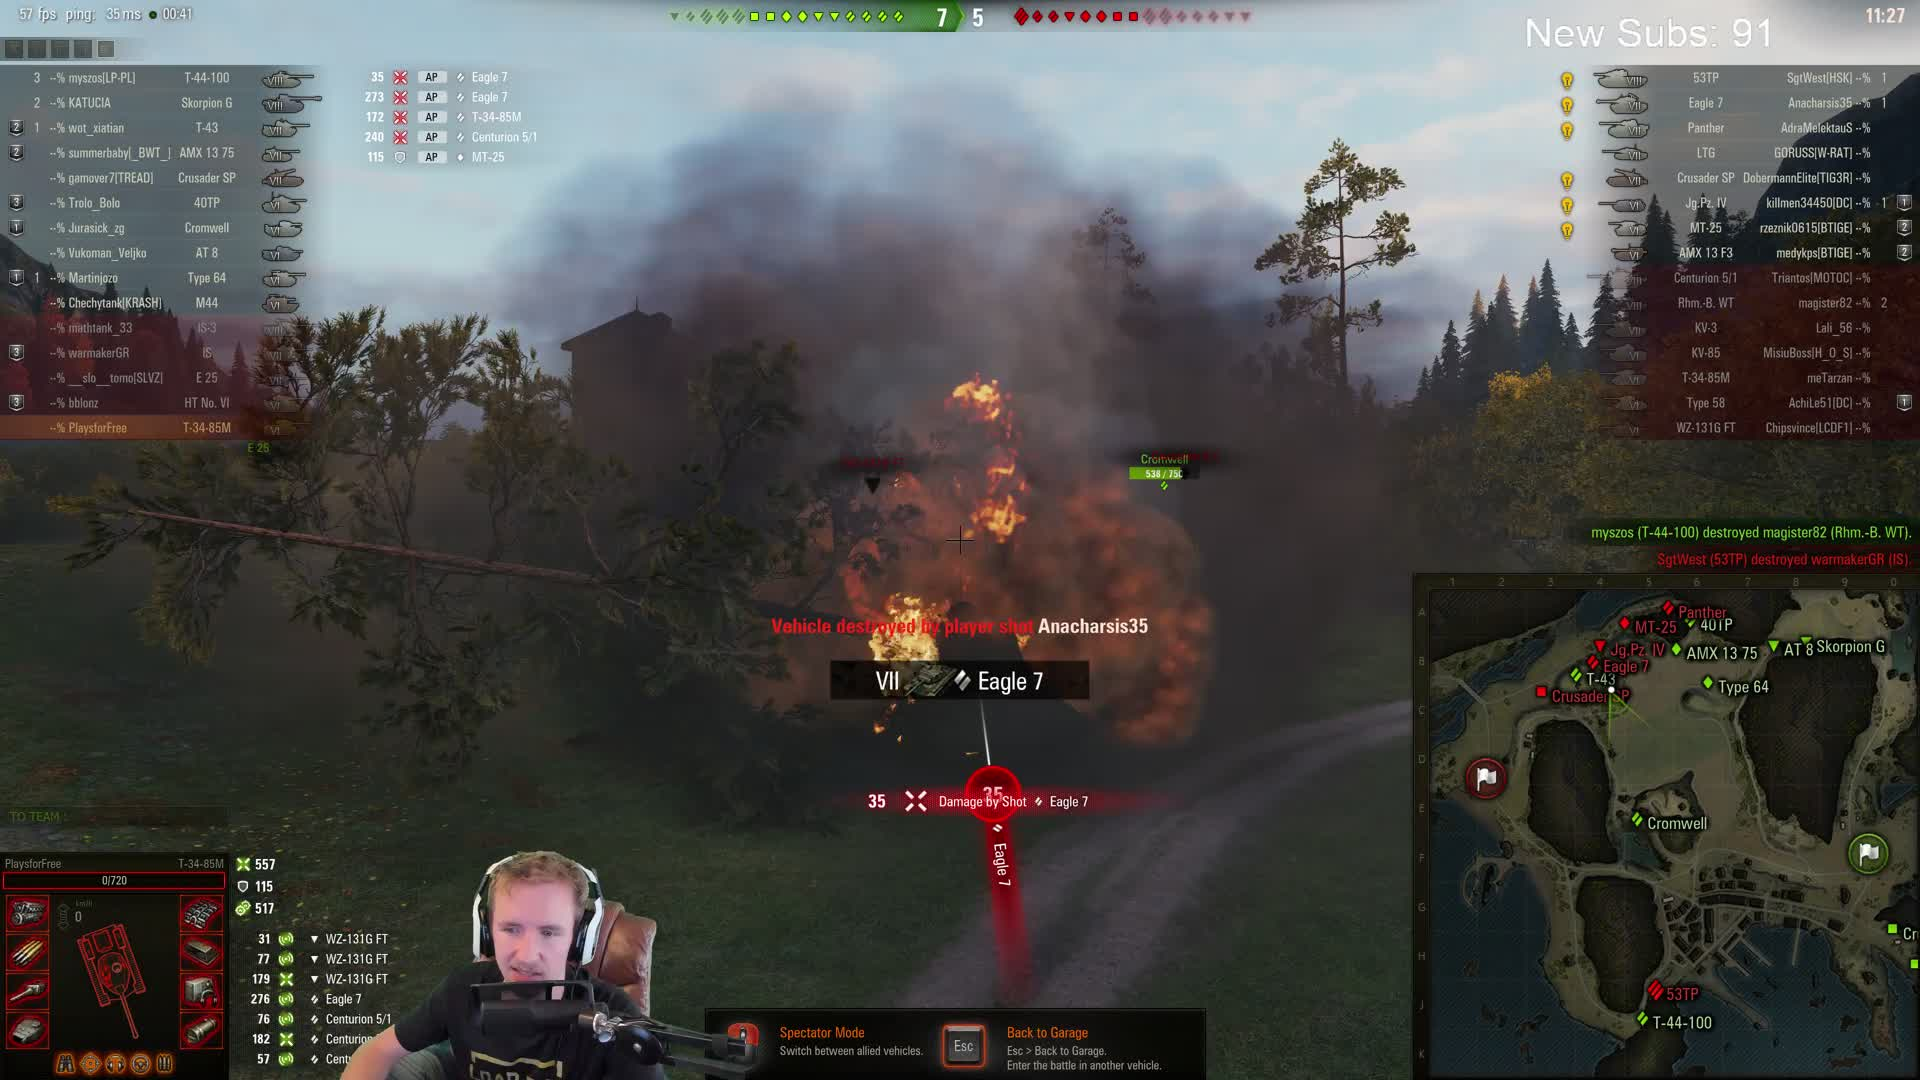 A 43 Wot quickybaby - new account - free to play    3300+ wn8    15